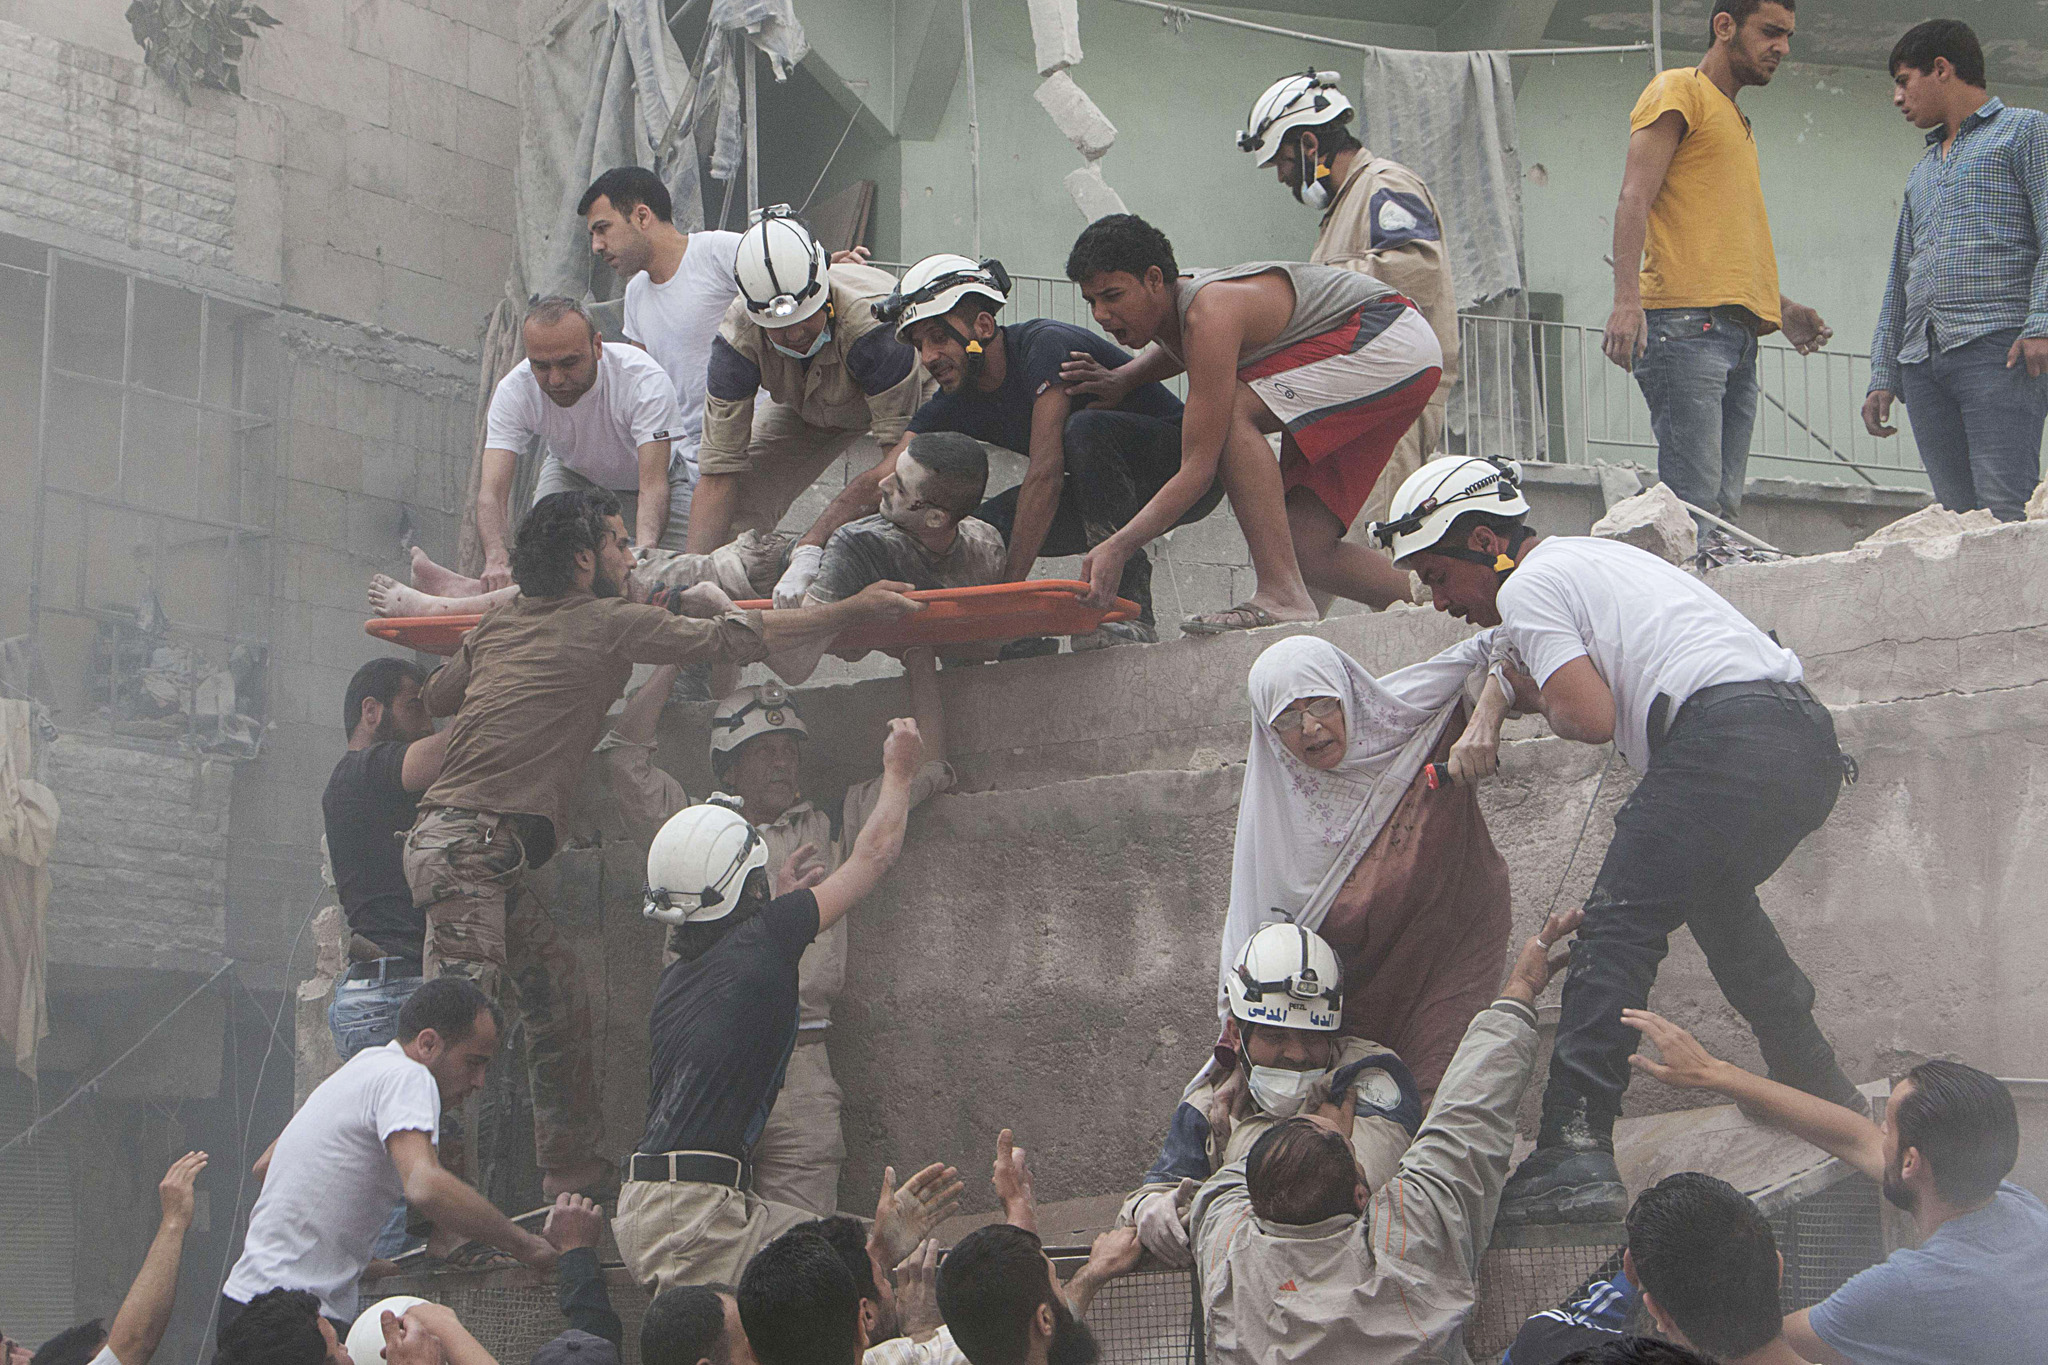 Syrian rescue workers and citizens evacu...Syrian rescue workers and citizens evacuate people from a building following a reported barrel bomb attack by Syrian government forces on the central al-Fardous rebel held neighbourhood of the northern Syrian city of Aleppo, on June 9, 2015.  AFP PHOTO / KARAM AL-MASRI KARAM AL-MASRI/AFP/Getty Images